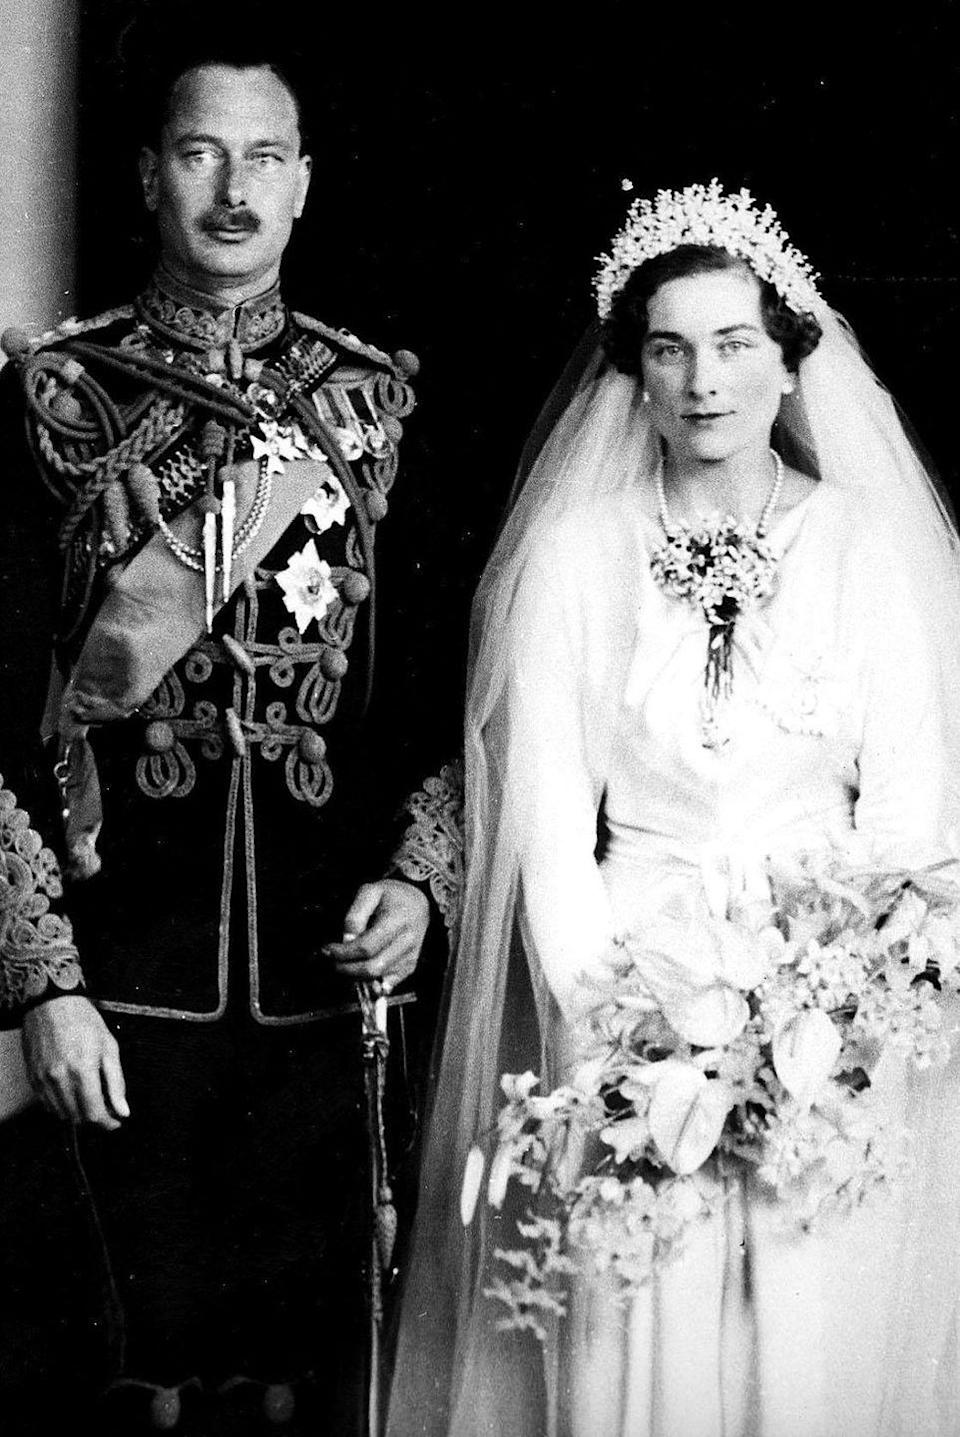 "<p><strong>Wedding date: </strong>November 06, 1935</p><p><strong>Wedding tiara: </strong>Alice didn't actually wear a tiara to her royal wedding to Prince Henry, Duke of Gloucester. <a href=""http://orderofsplendor.blogspot.com/2011/11/wedding-wednesday-alice-duchess-of.html"" rel=""nofollow noopener"" target=""_blank"" data-ylk=""slk:Instead, she wore a crystal headdress"" class=""link rapid-noclick-resp"">Instead, she wore a crystal headdress</a> that attached to her tulle veil. The wedding was an unexpectedly somber occasion because Alice's father died only weeks before the ceremony. </p>"